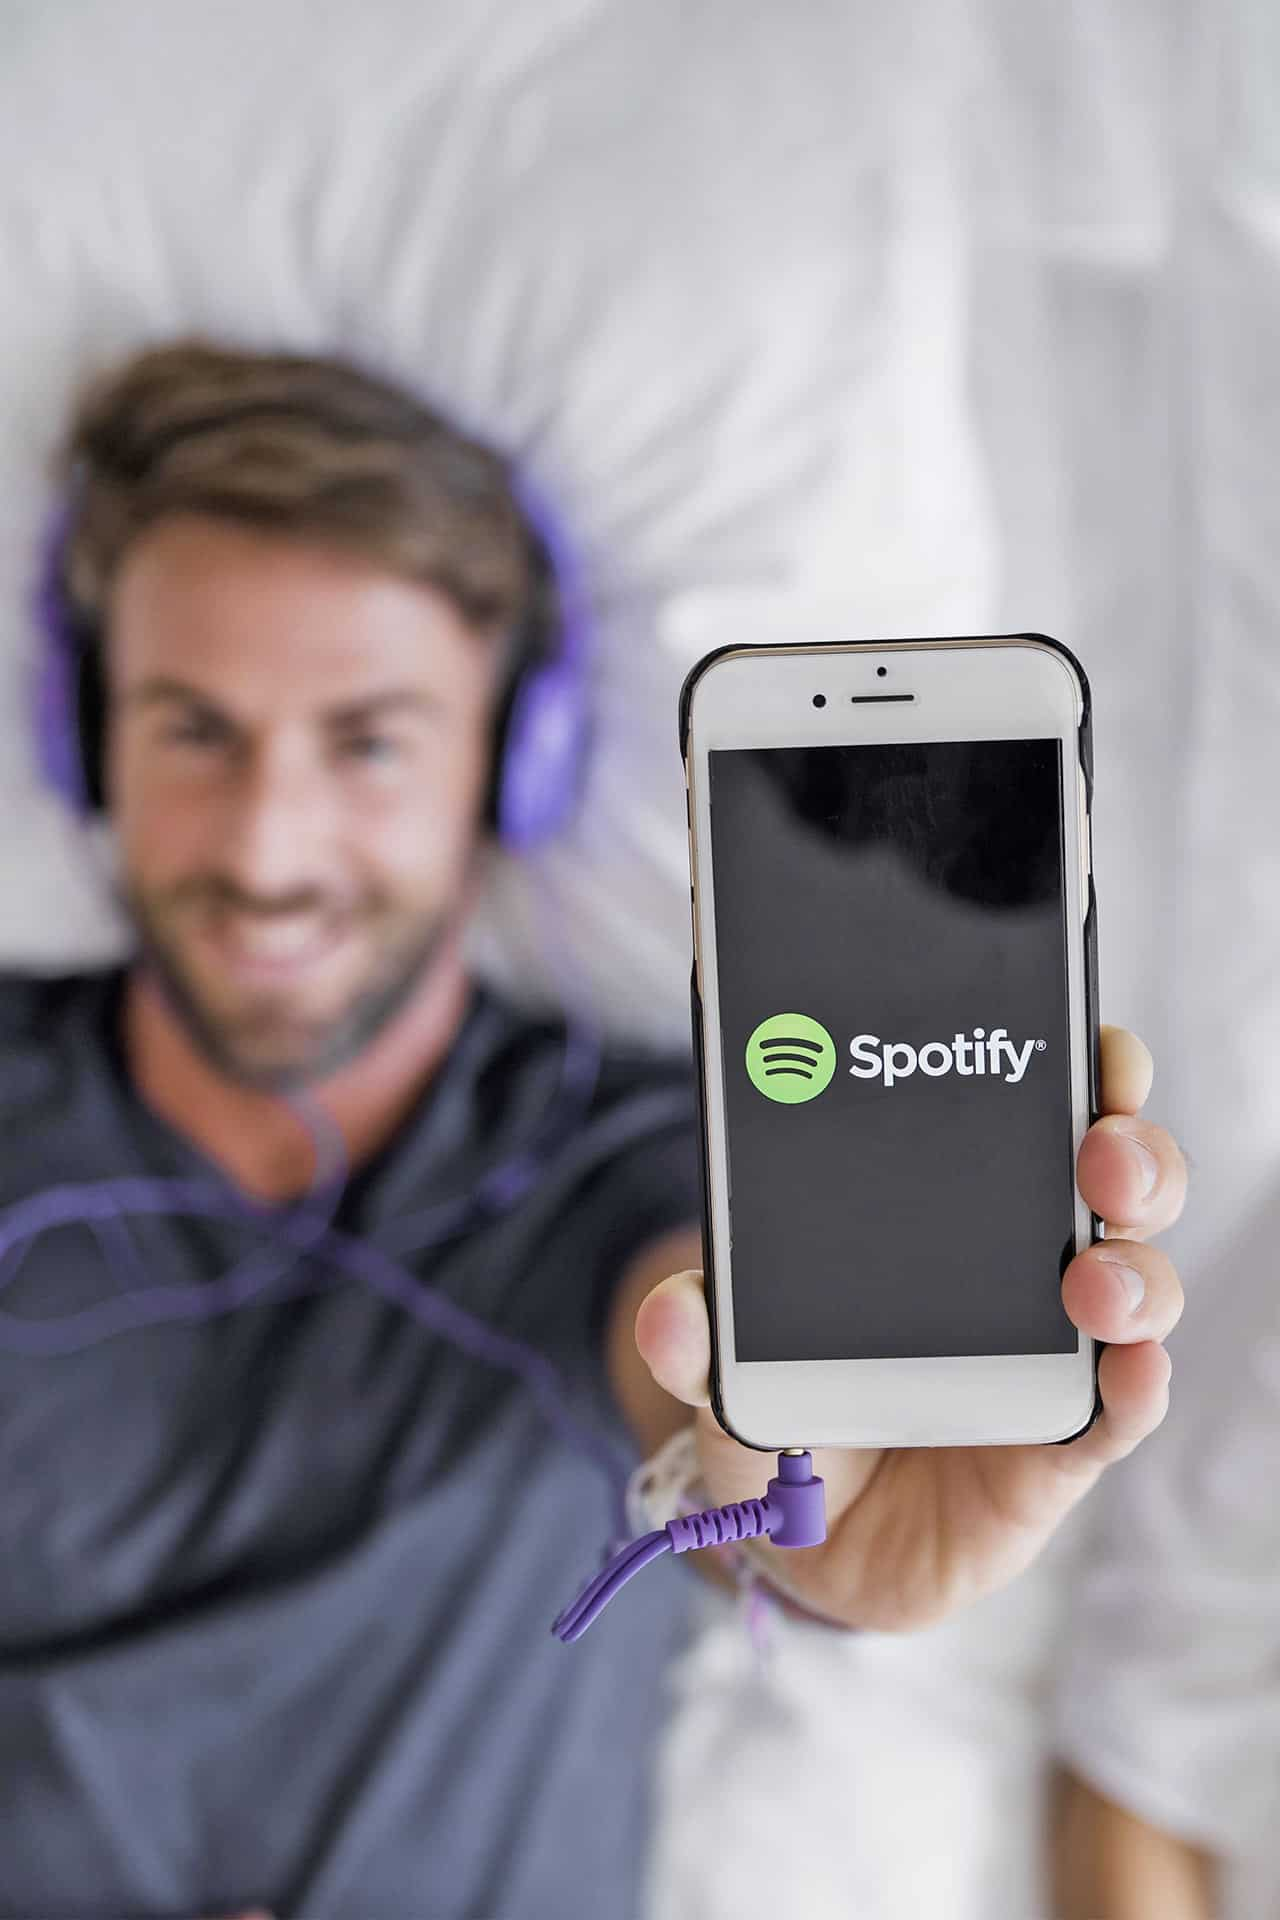 SPOTIFY ADVERTISING